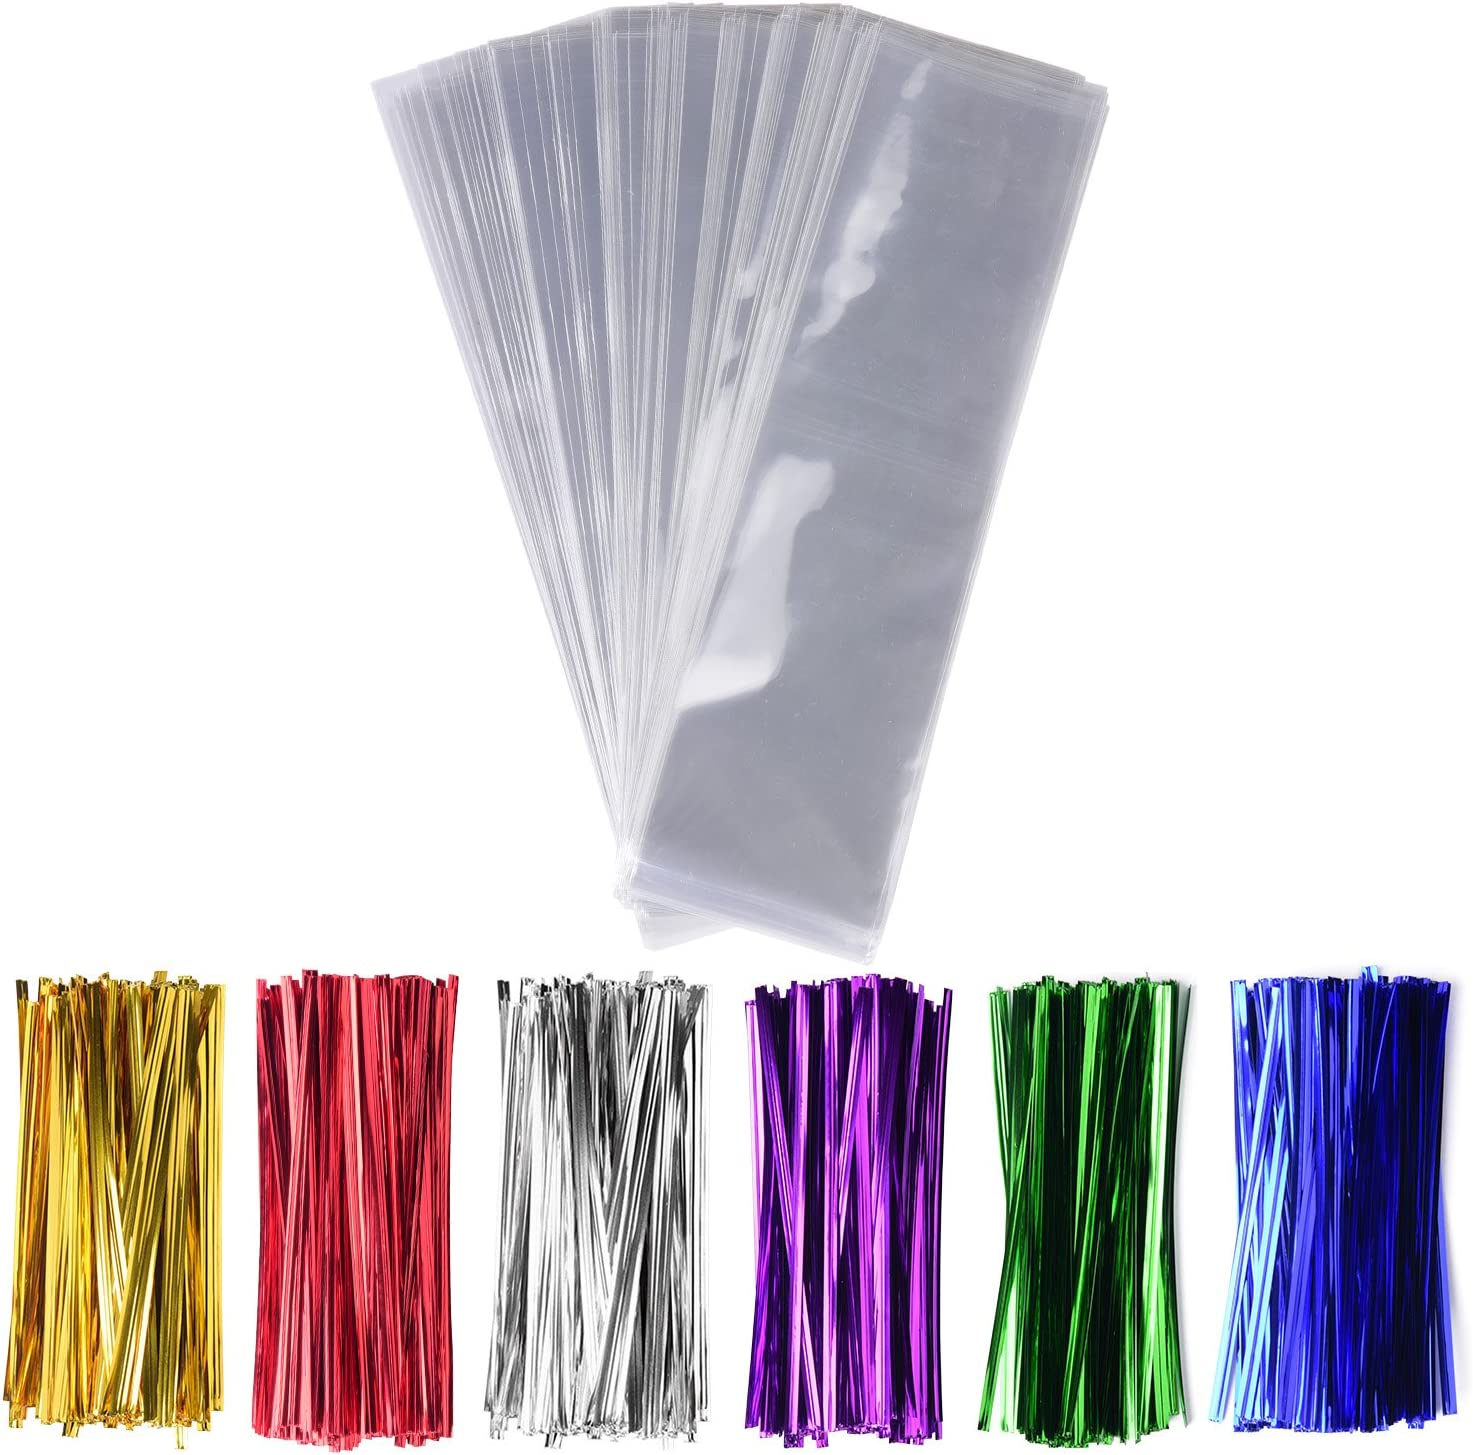 uxcell 200pcs 100mm x 1mm White Plastic Packaging Wire Twist Ties for Party Cello Candy Bags